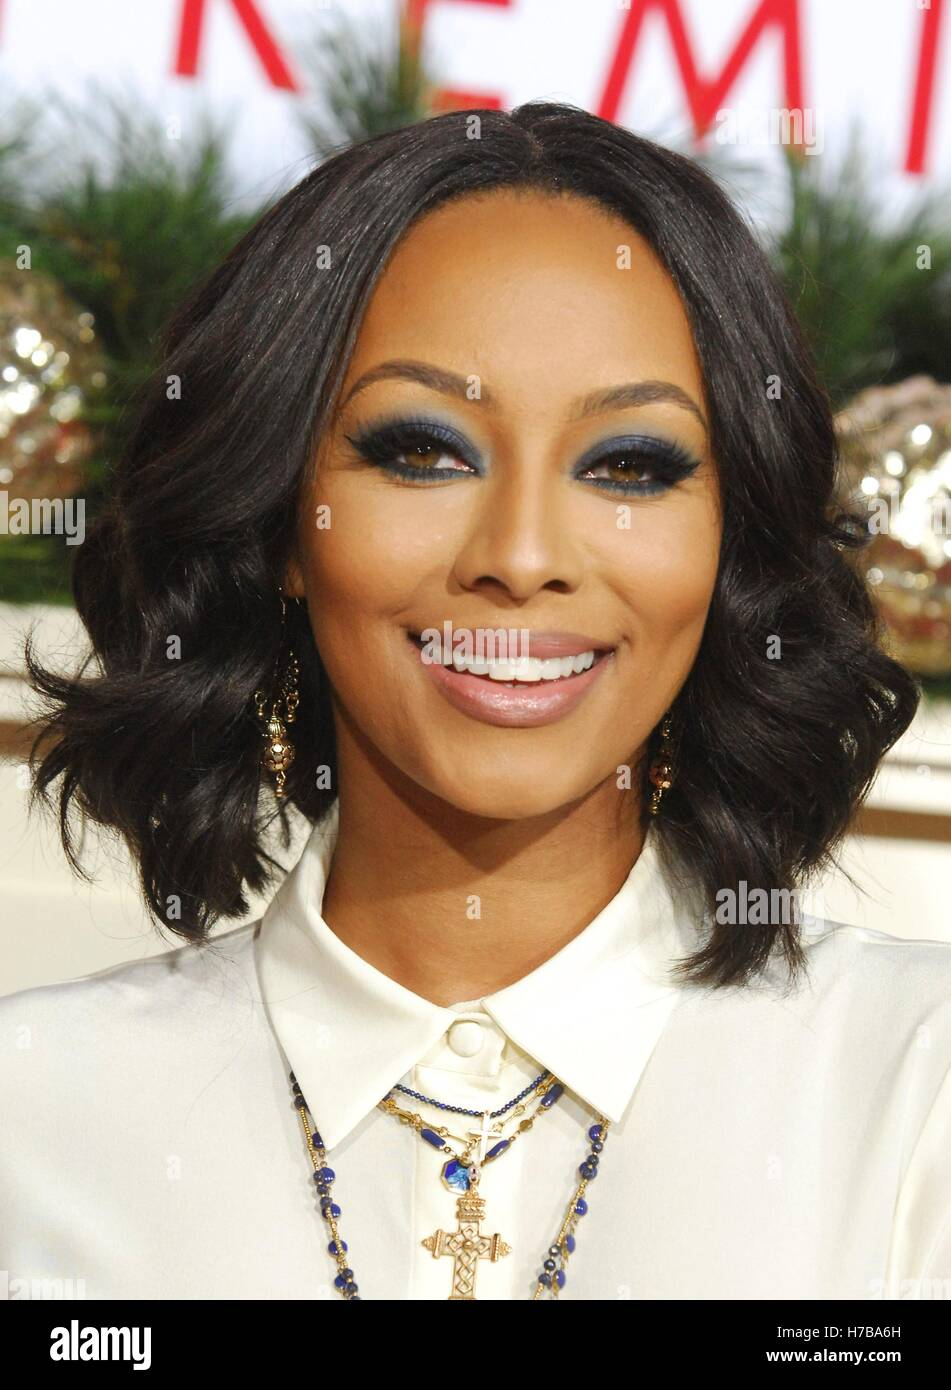 2016 Keri Hilson Stock Photos & 2016 Keri Hilson Stock Images - Alamy